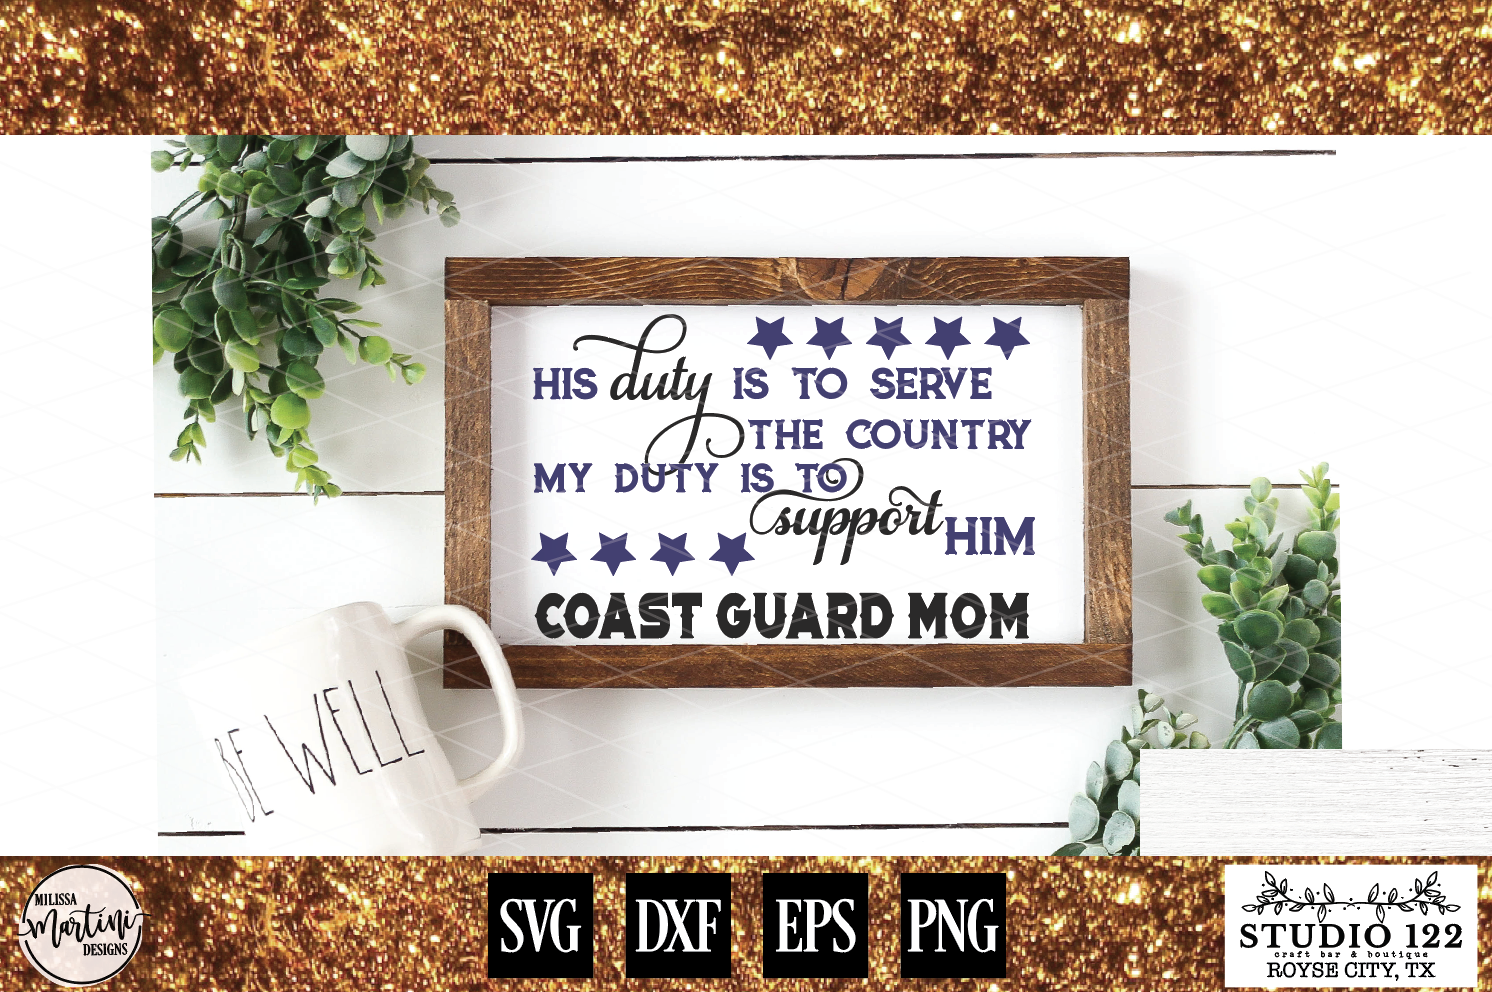 COAST GUARD MOM example image 1